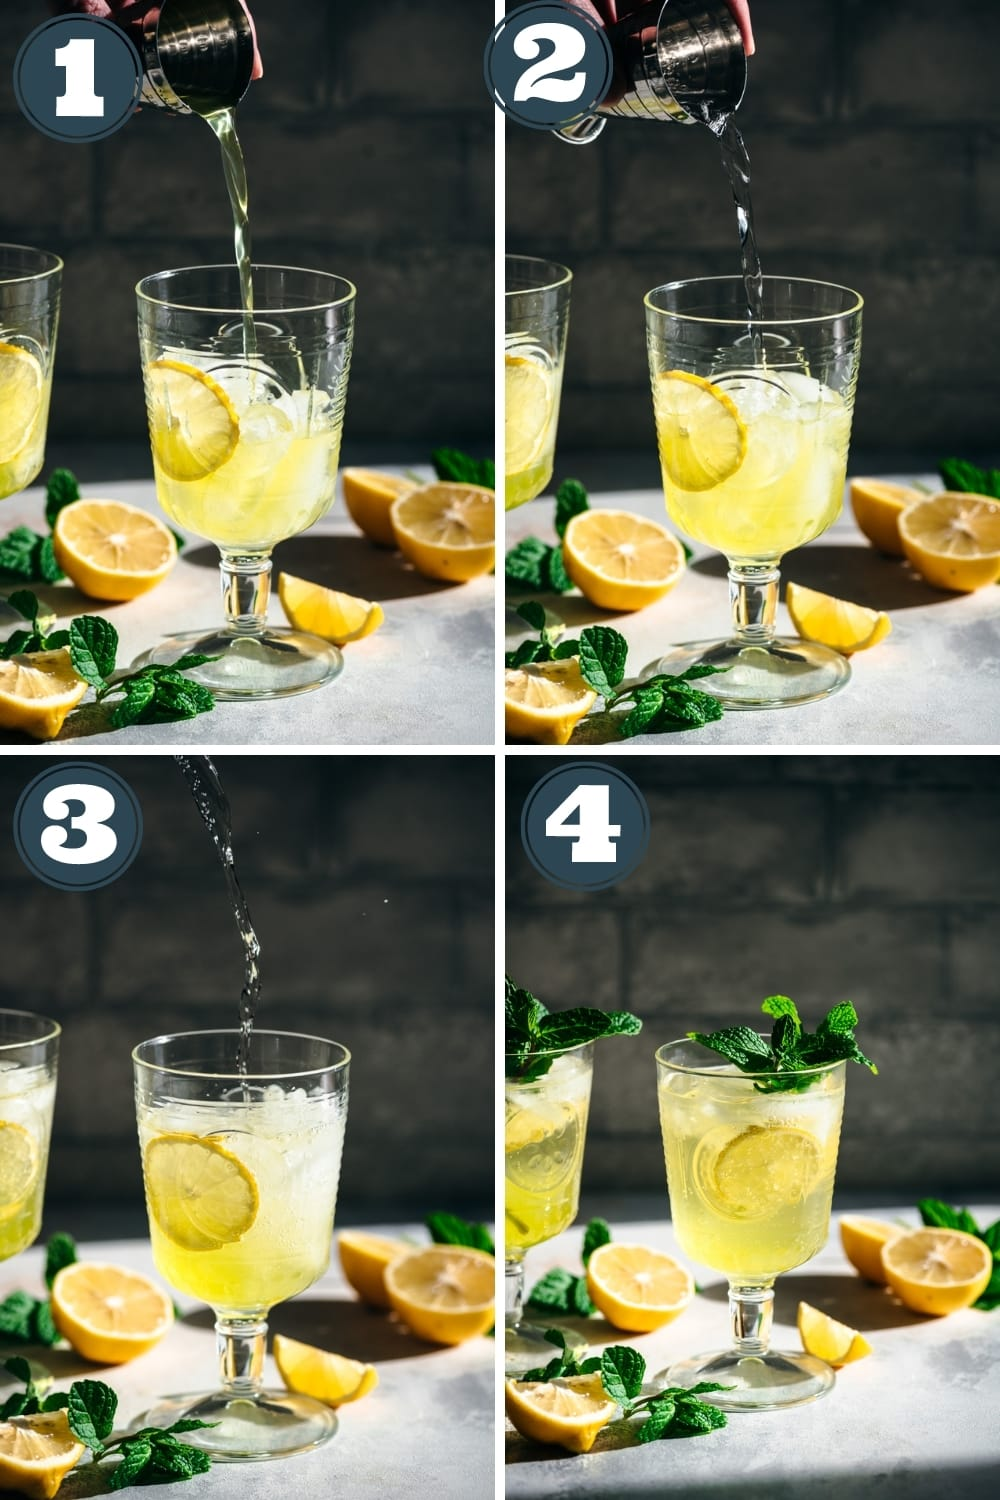 step by step photos of pouring ingredients for limoncello spritz into a cocktail glass.